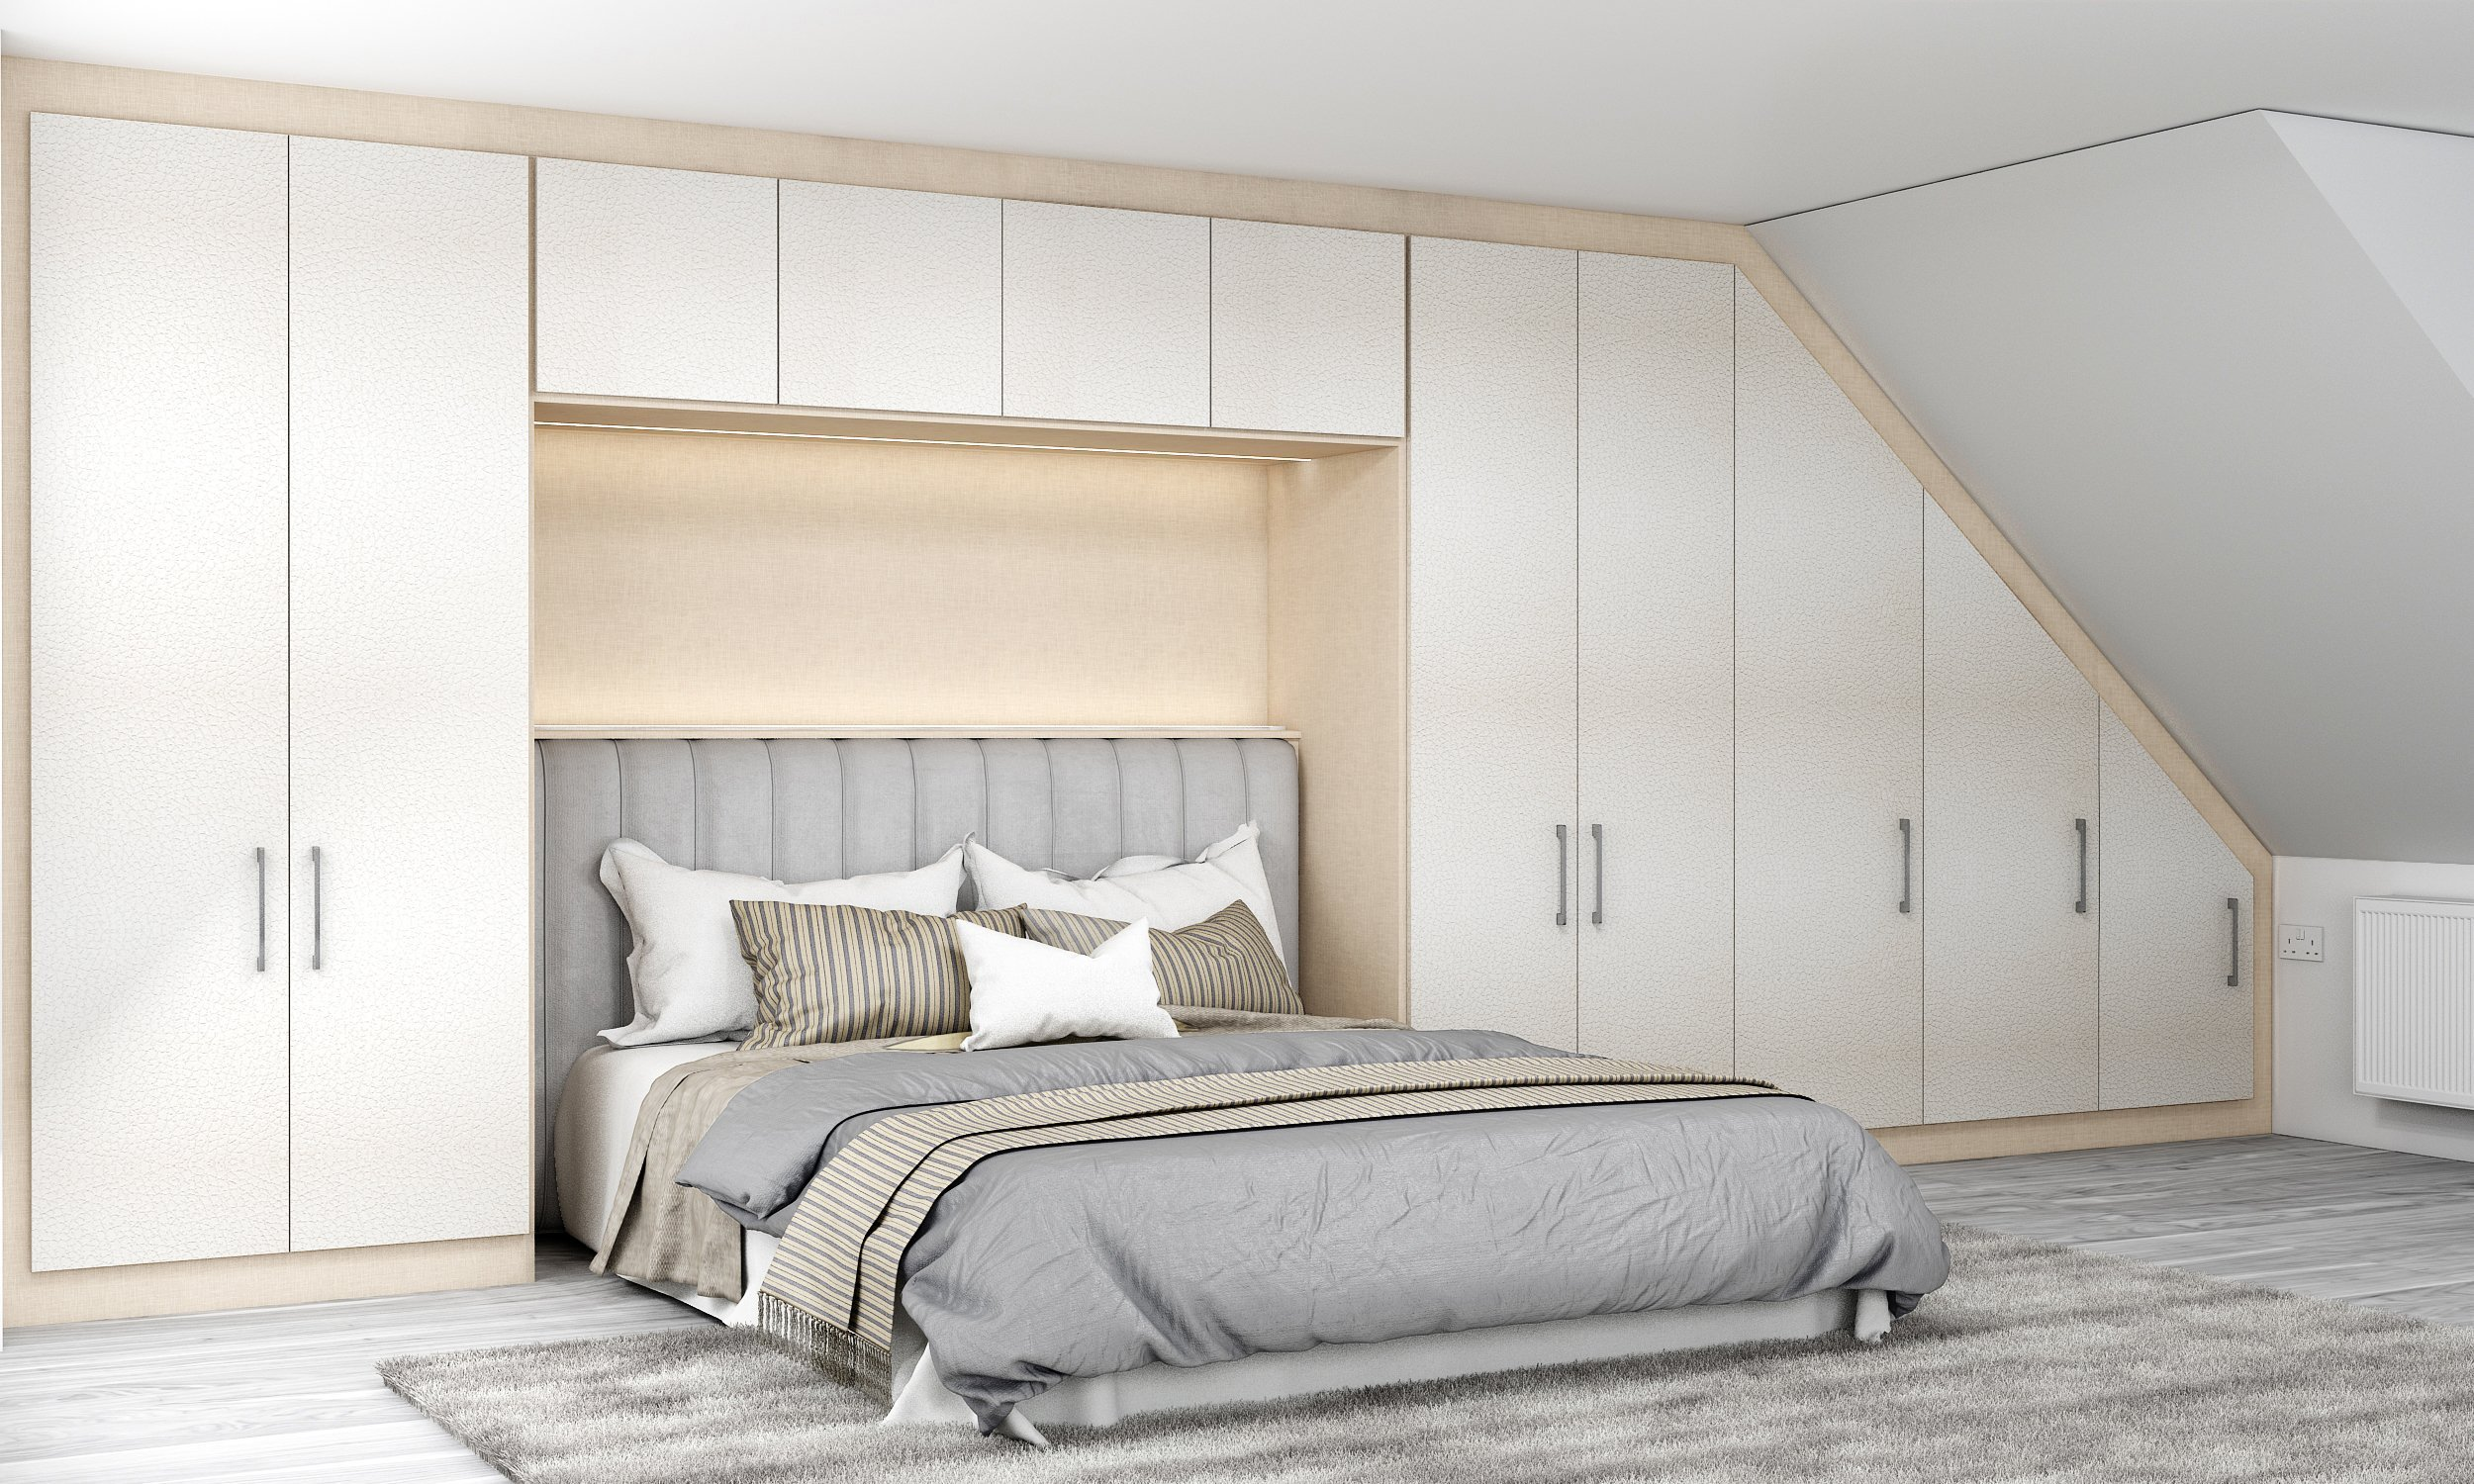 Loft Fitted Wardrobe in Cream Leather Texture and Cashmere Finish